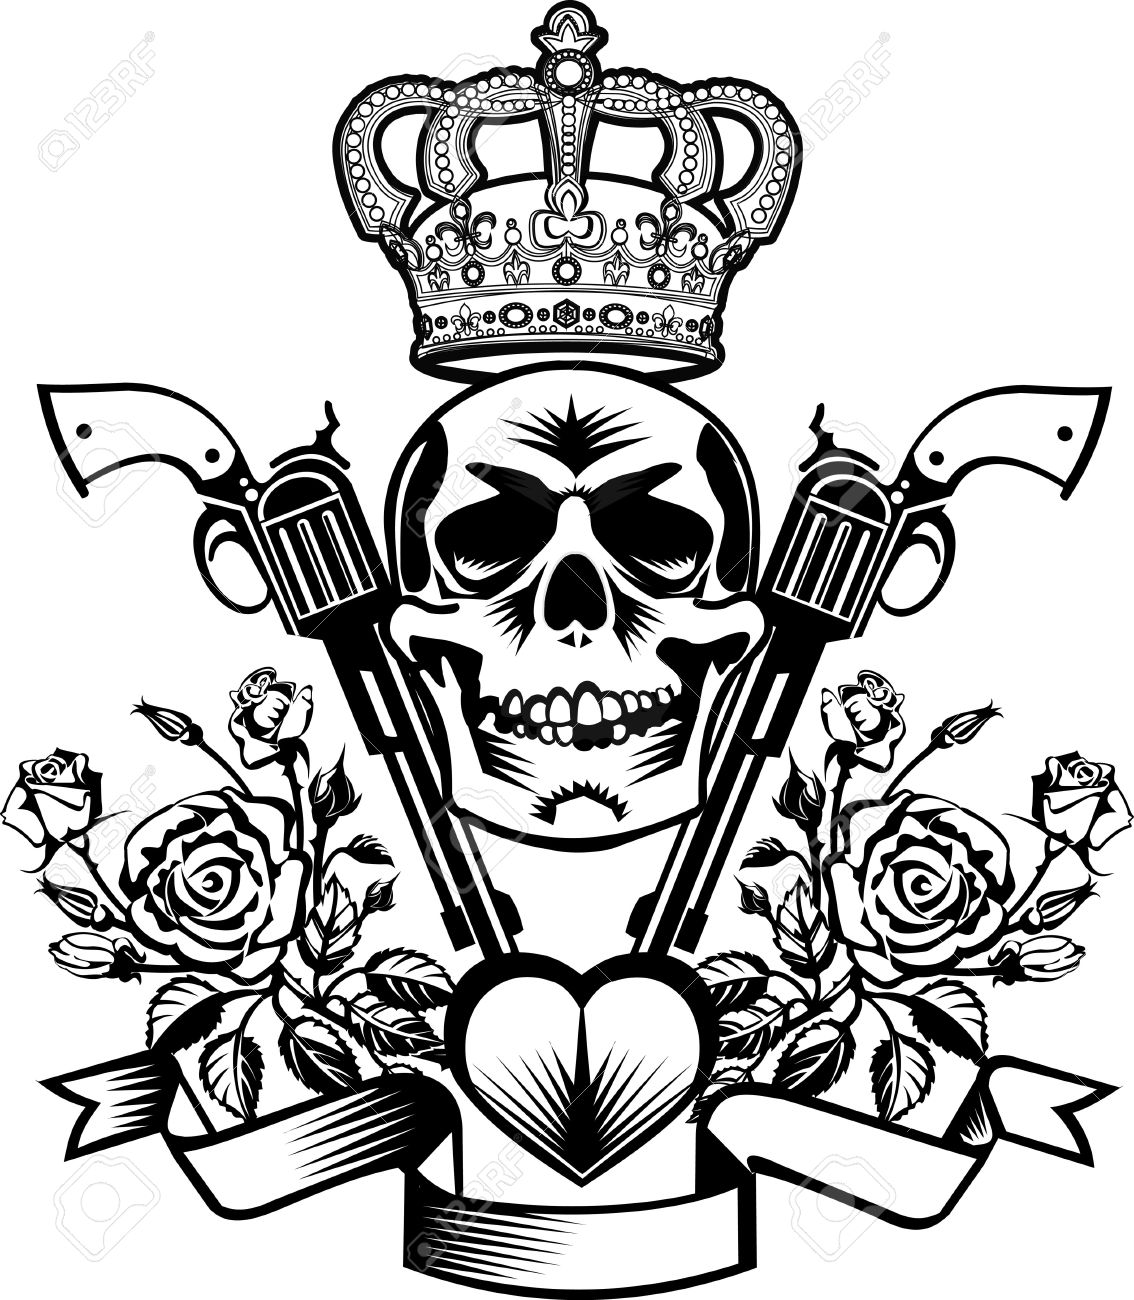 1134x1300 Tattoo Skull, Guns And Roses With Crown Royalty Free Cliparts